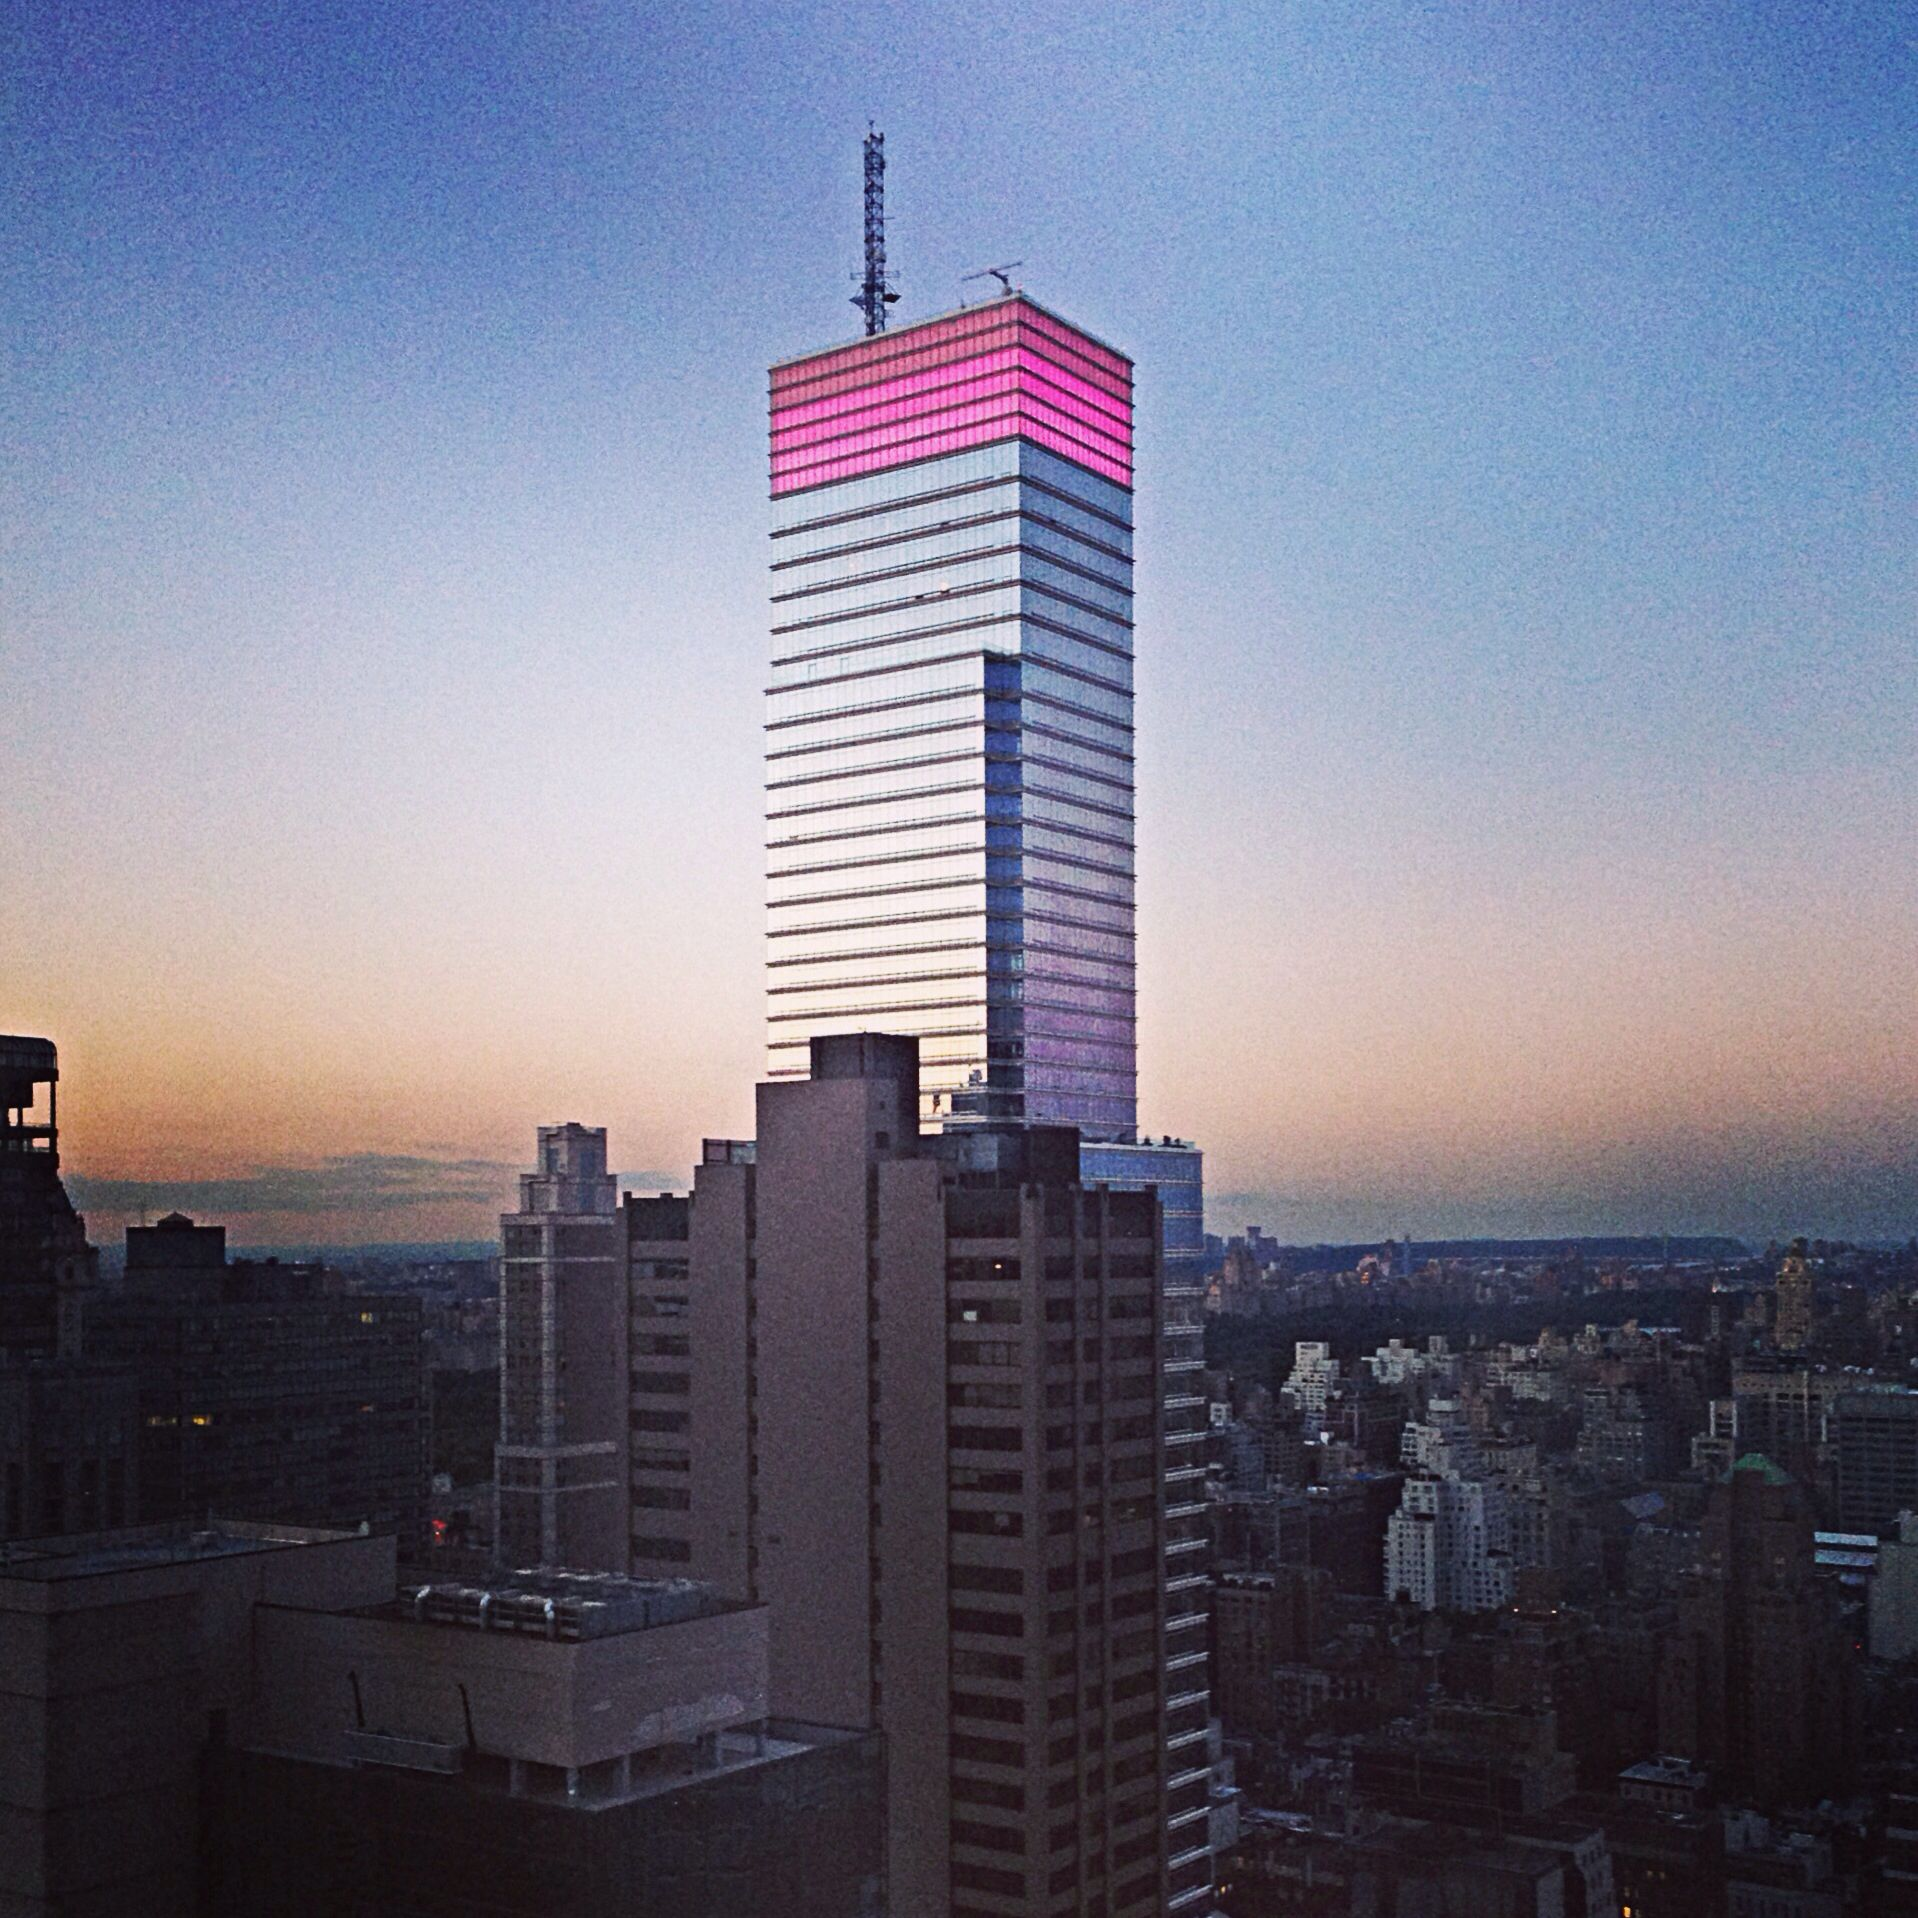 Couchtisch New York Skyline The Bloomberg Building Was Pink The Other Night Taken From My